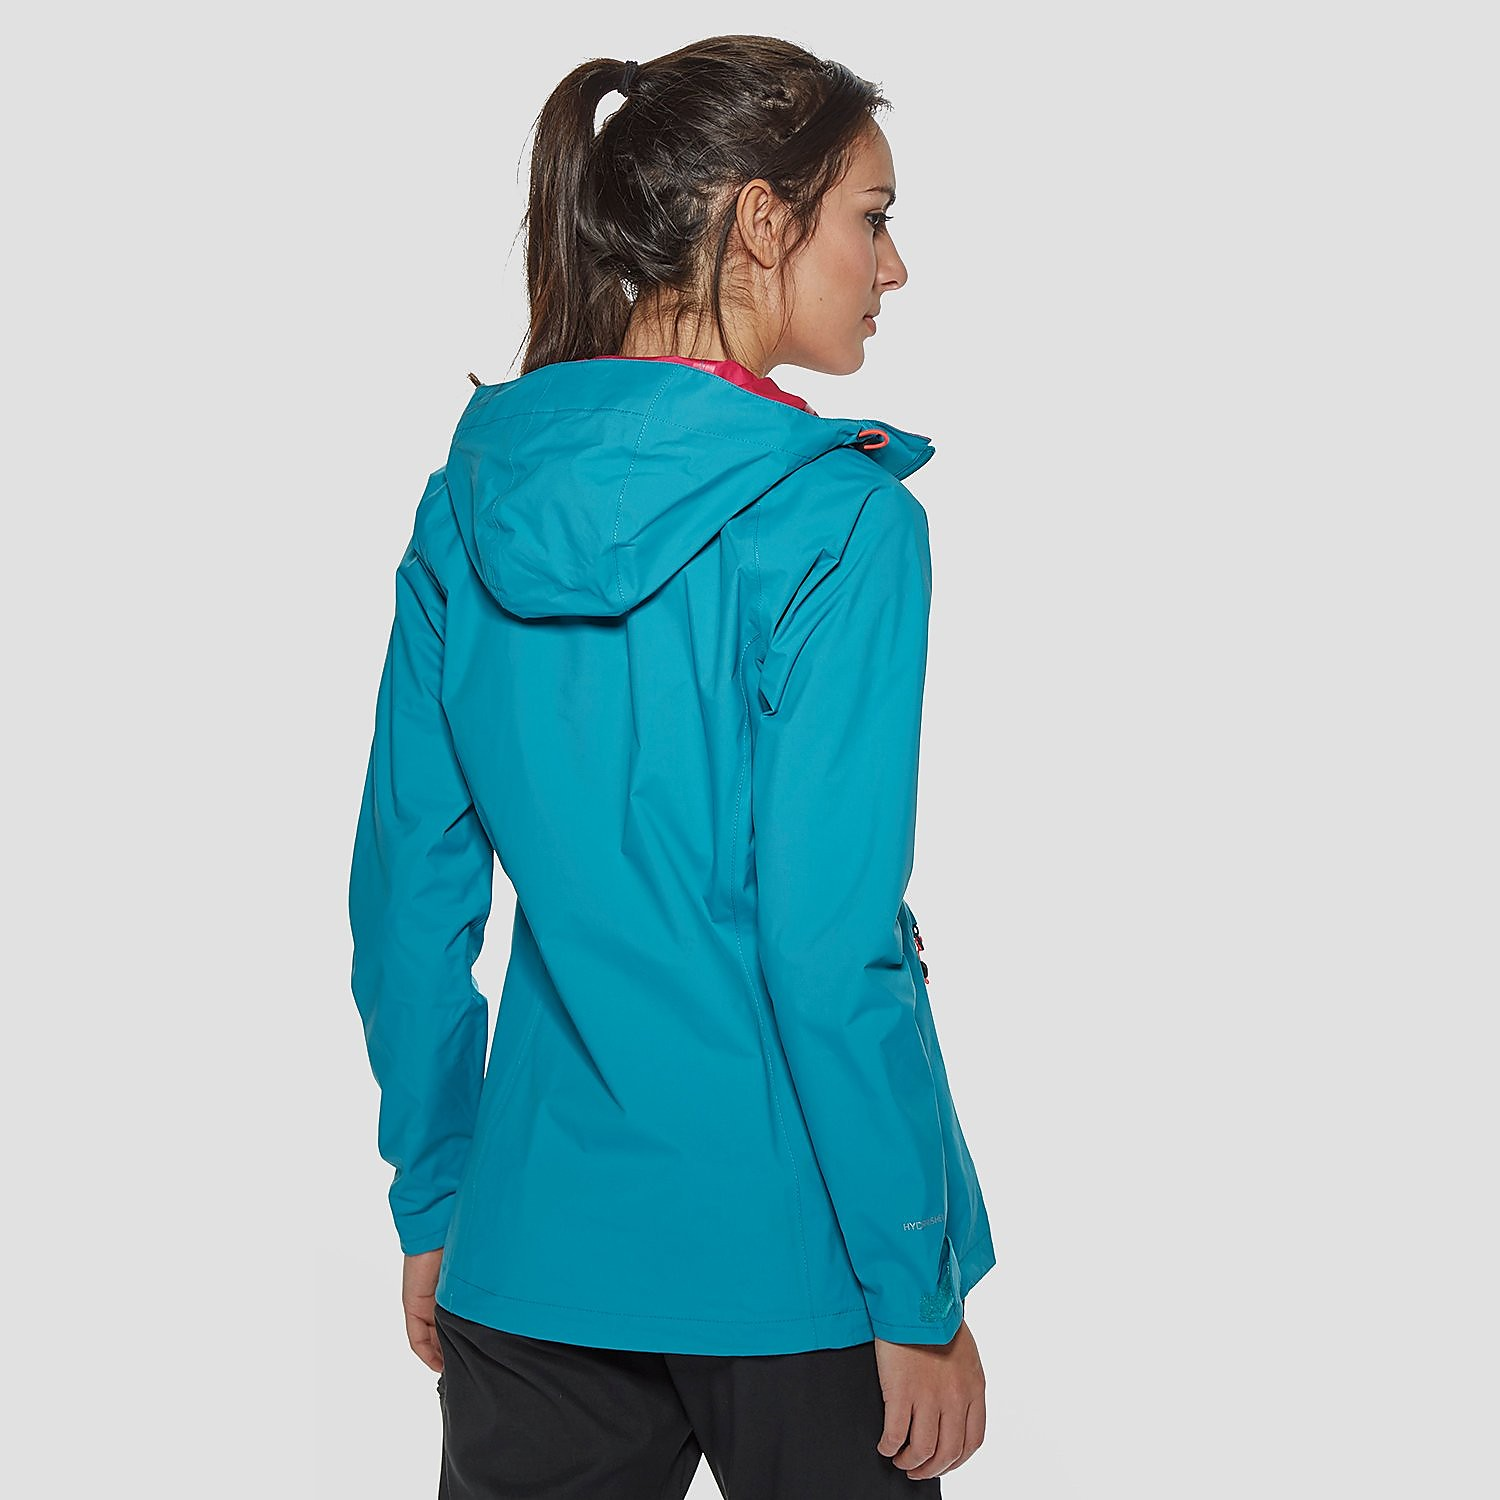 Berghaus Stormcloud Women's Jacket